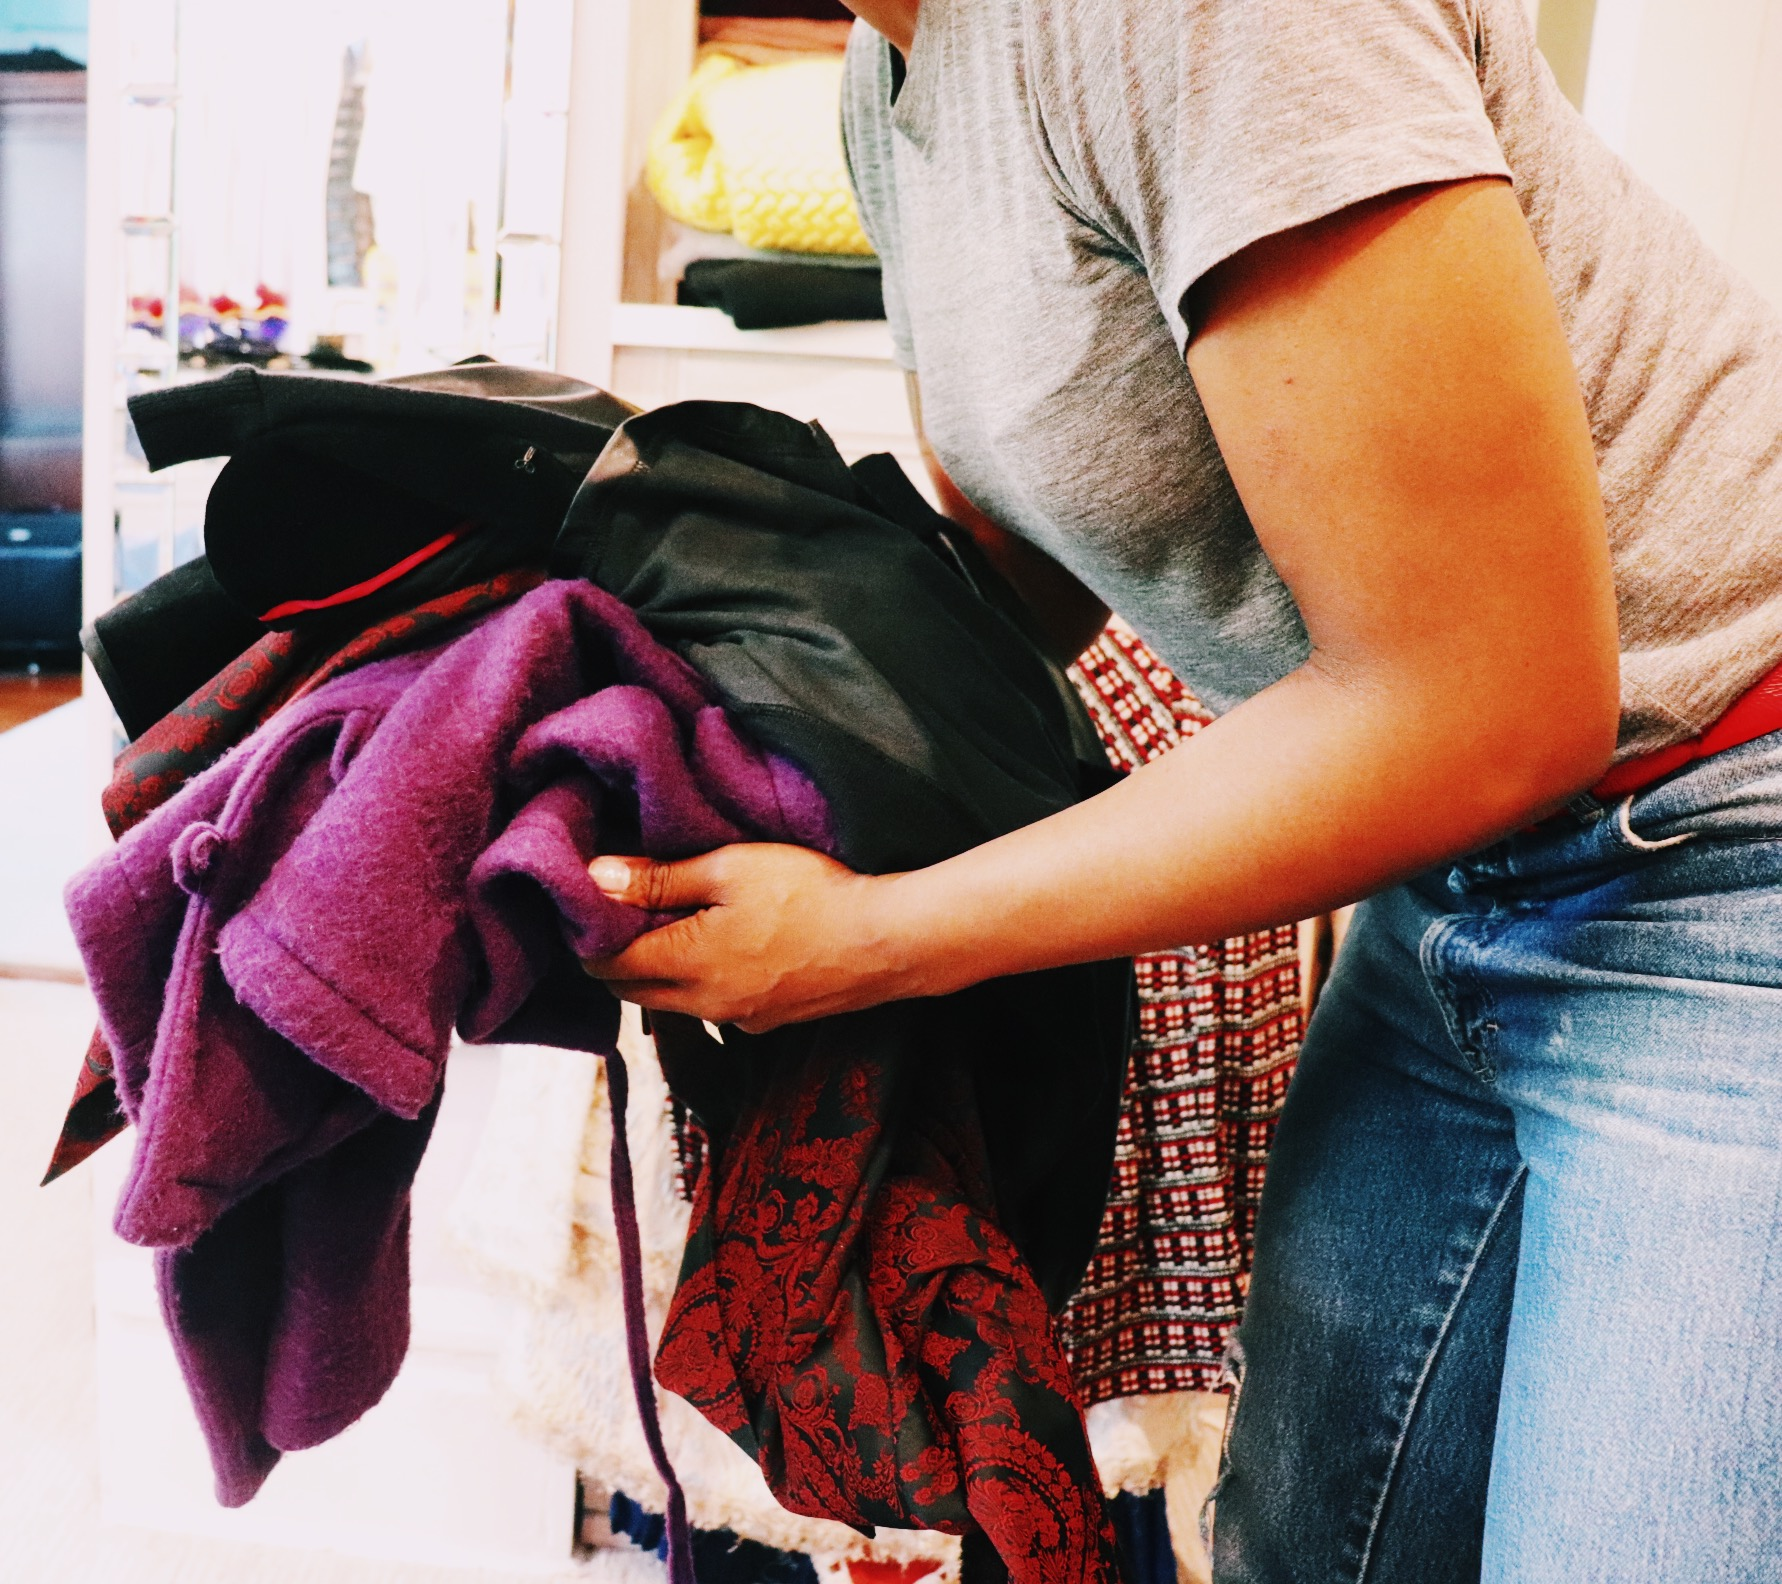 Your Clothing is organized into 3 categories: Entrepreneurship, Philanthropy & Sustainability. These 3 categories give you the  most ethical options in clothing disposal.